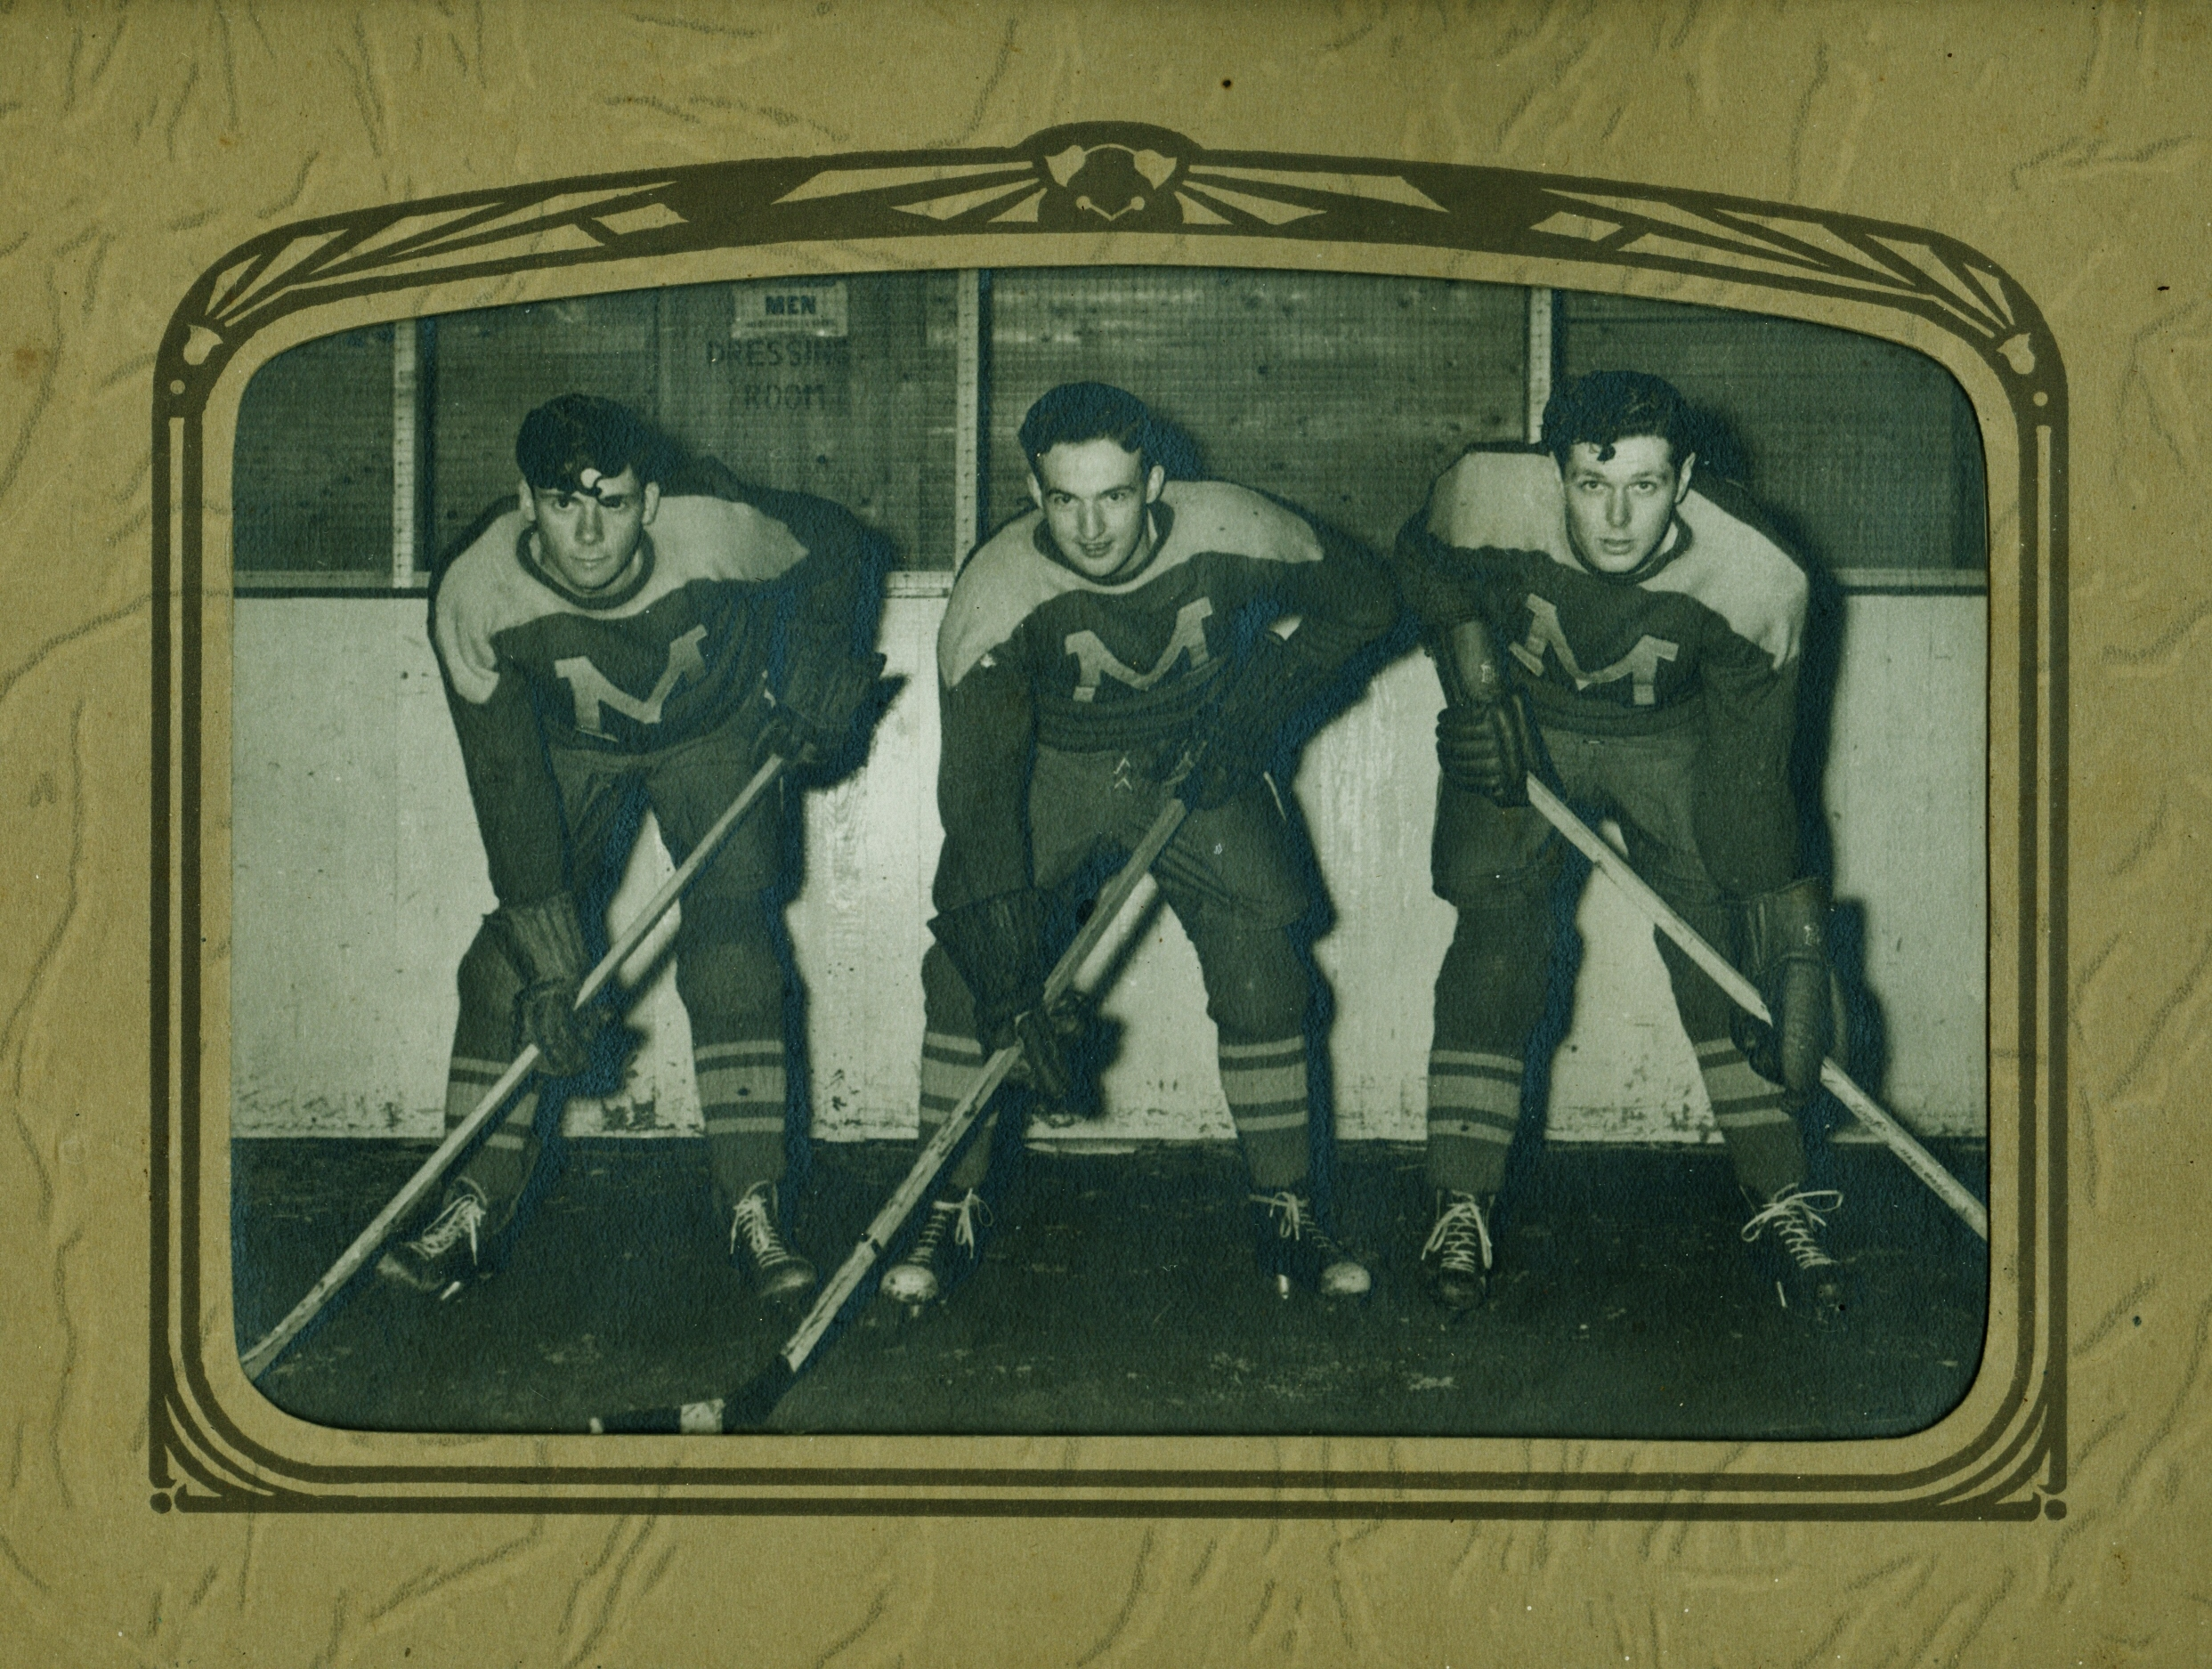 Men's Hockey,  Ernie Trumble, Ray Goodchild, Eric McInroy